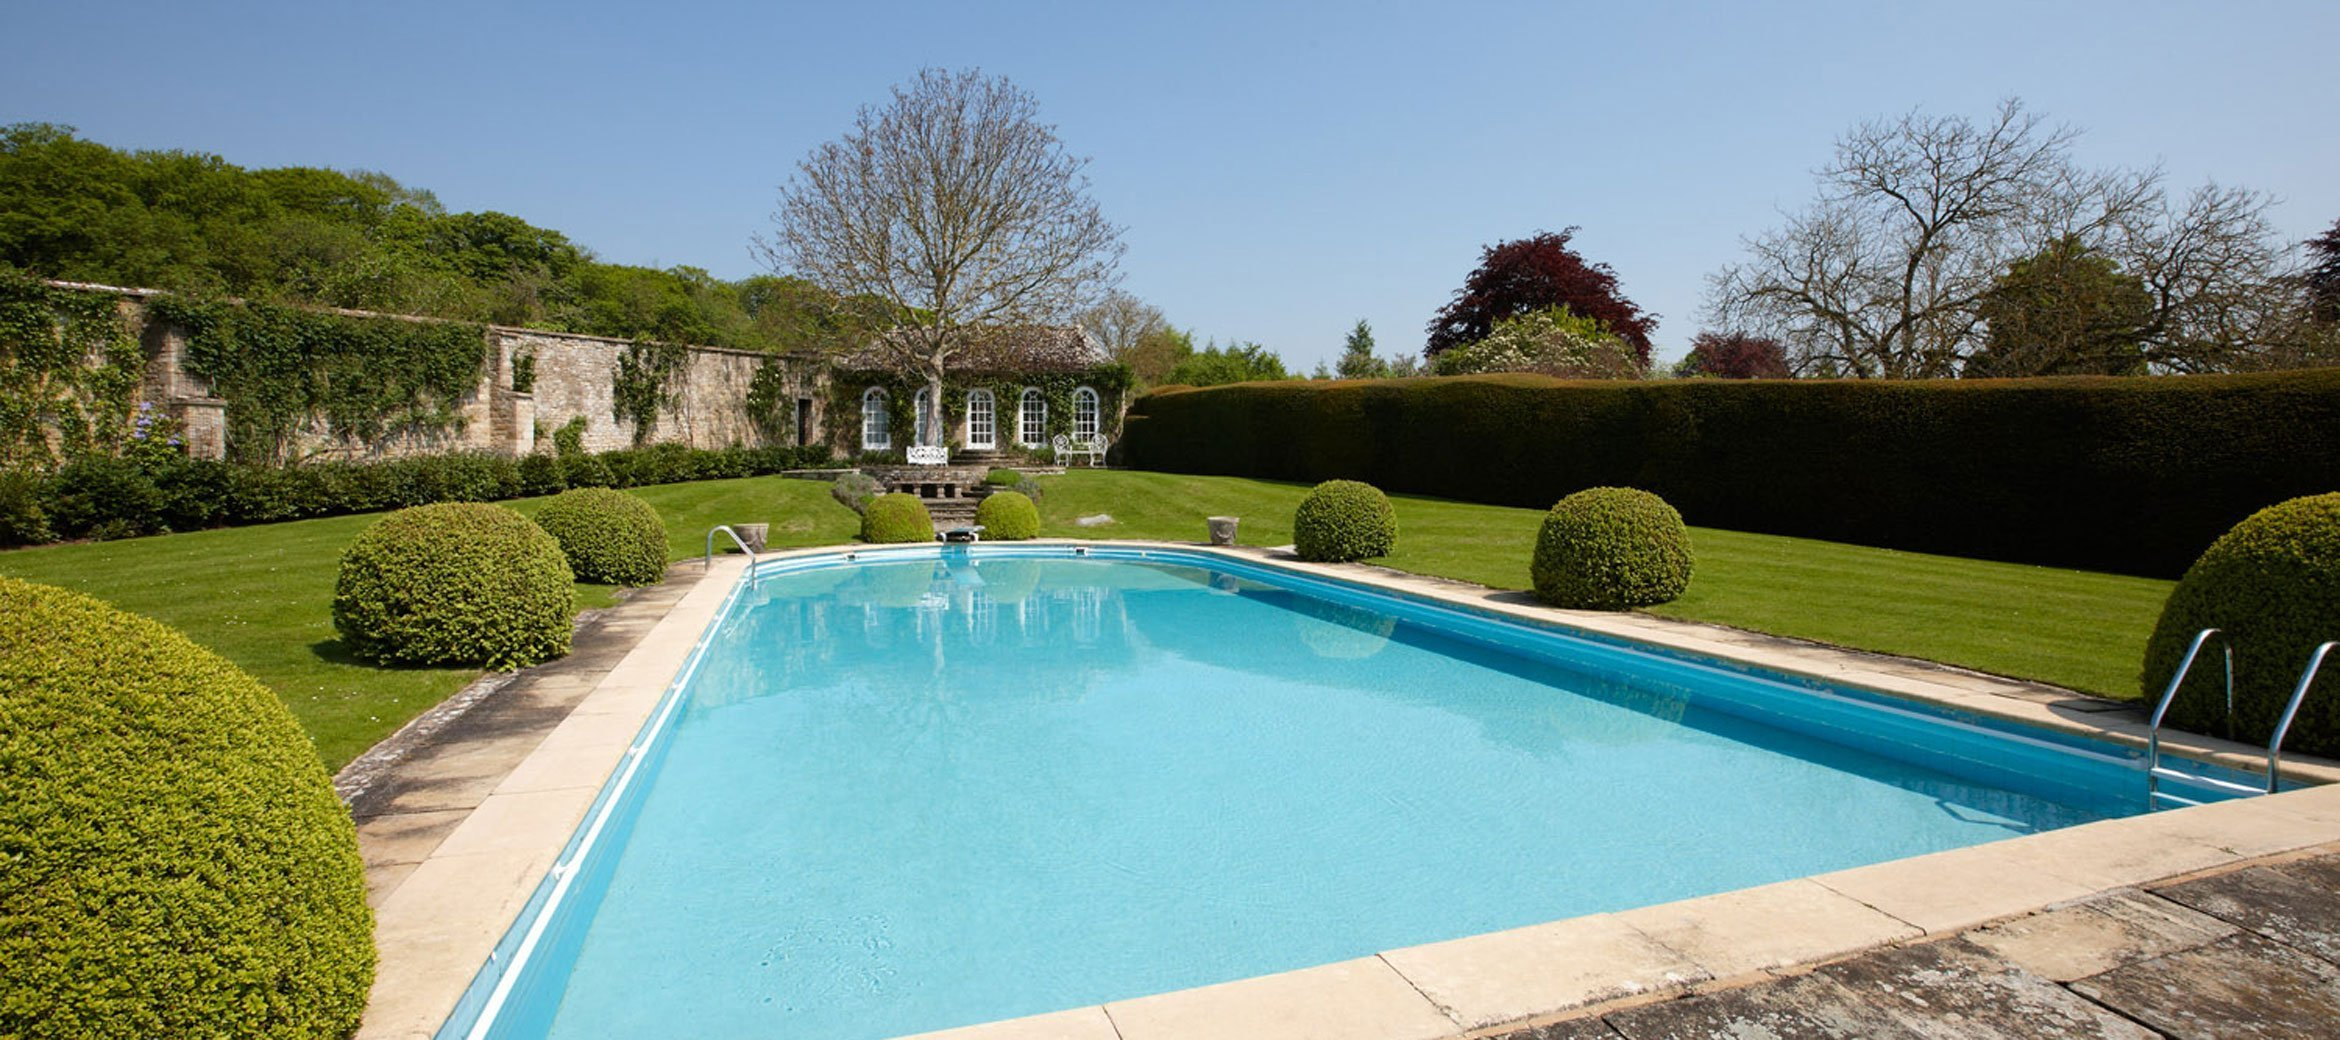 cornwell-manor-swimming-pool